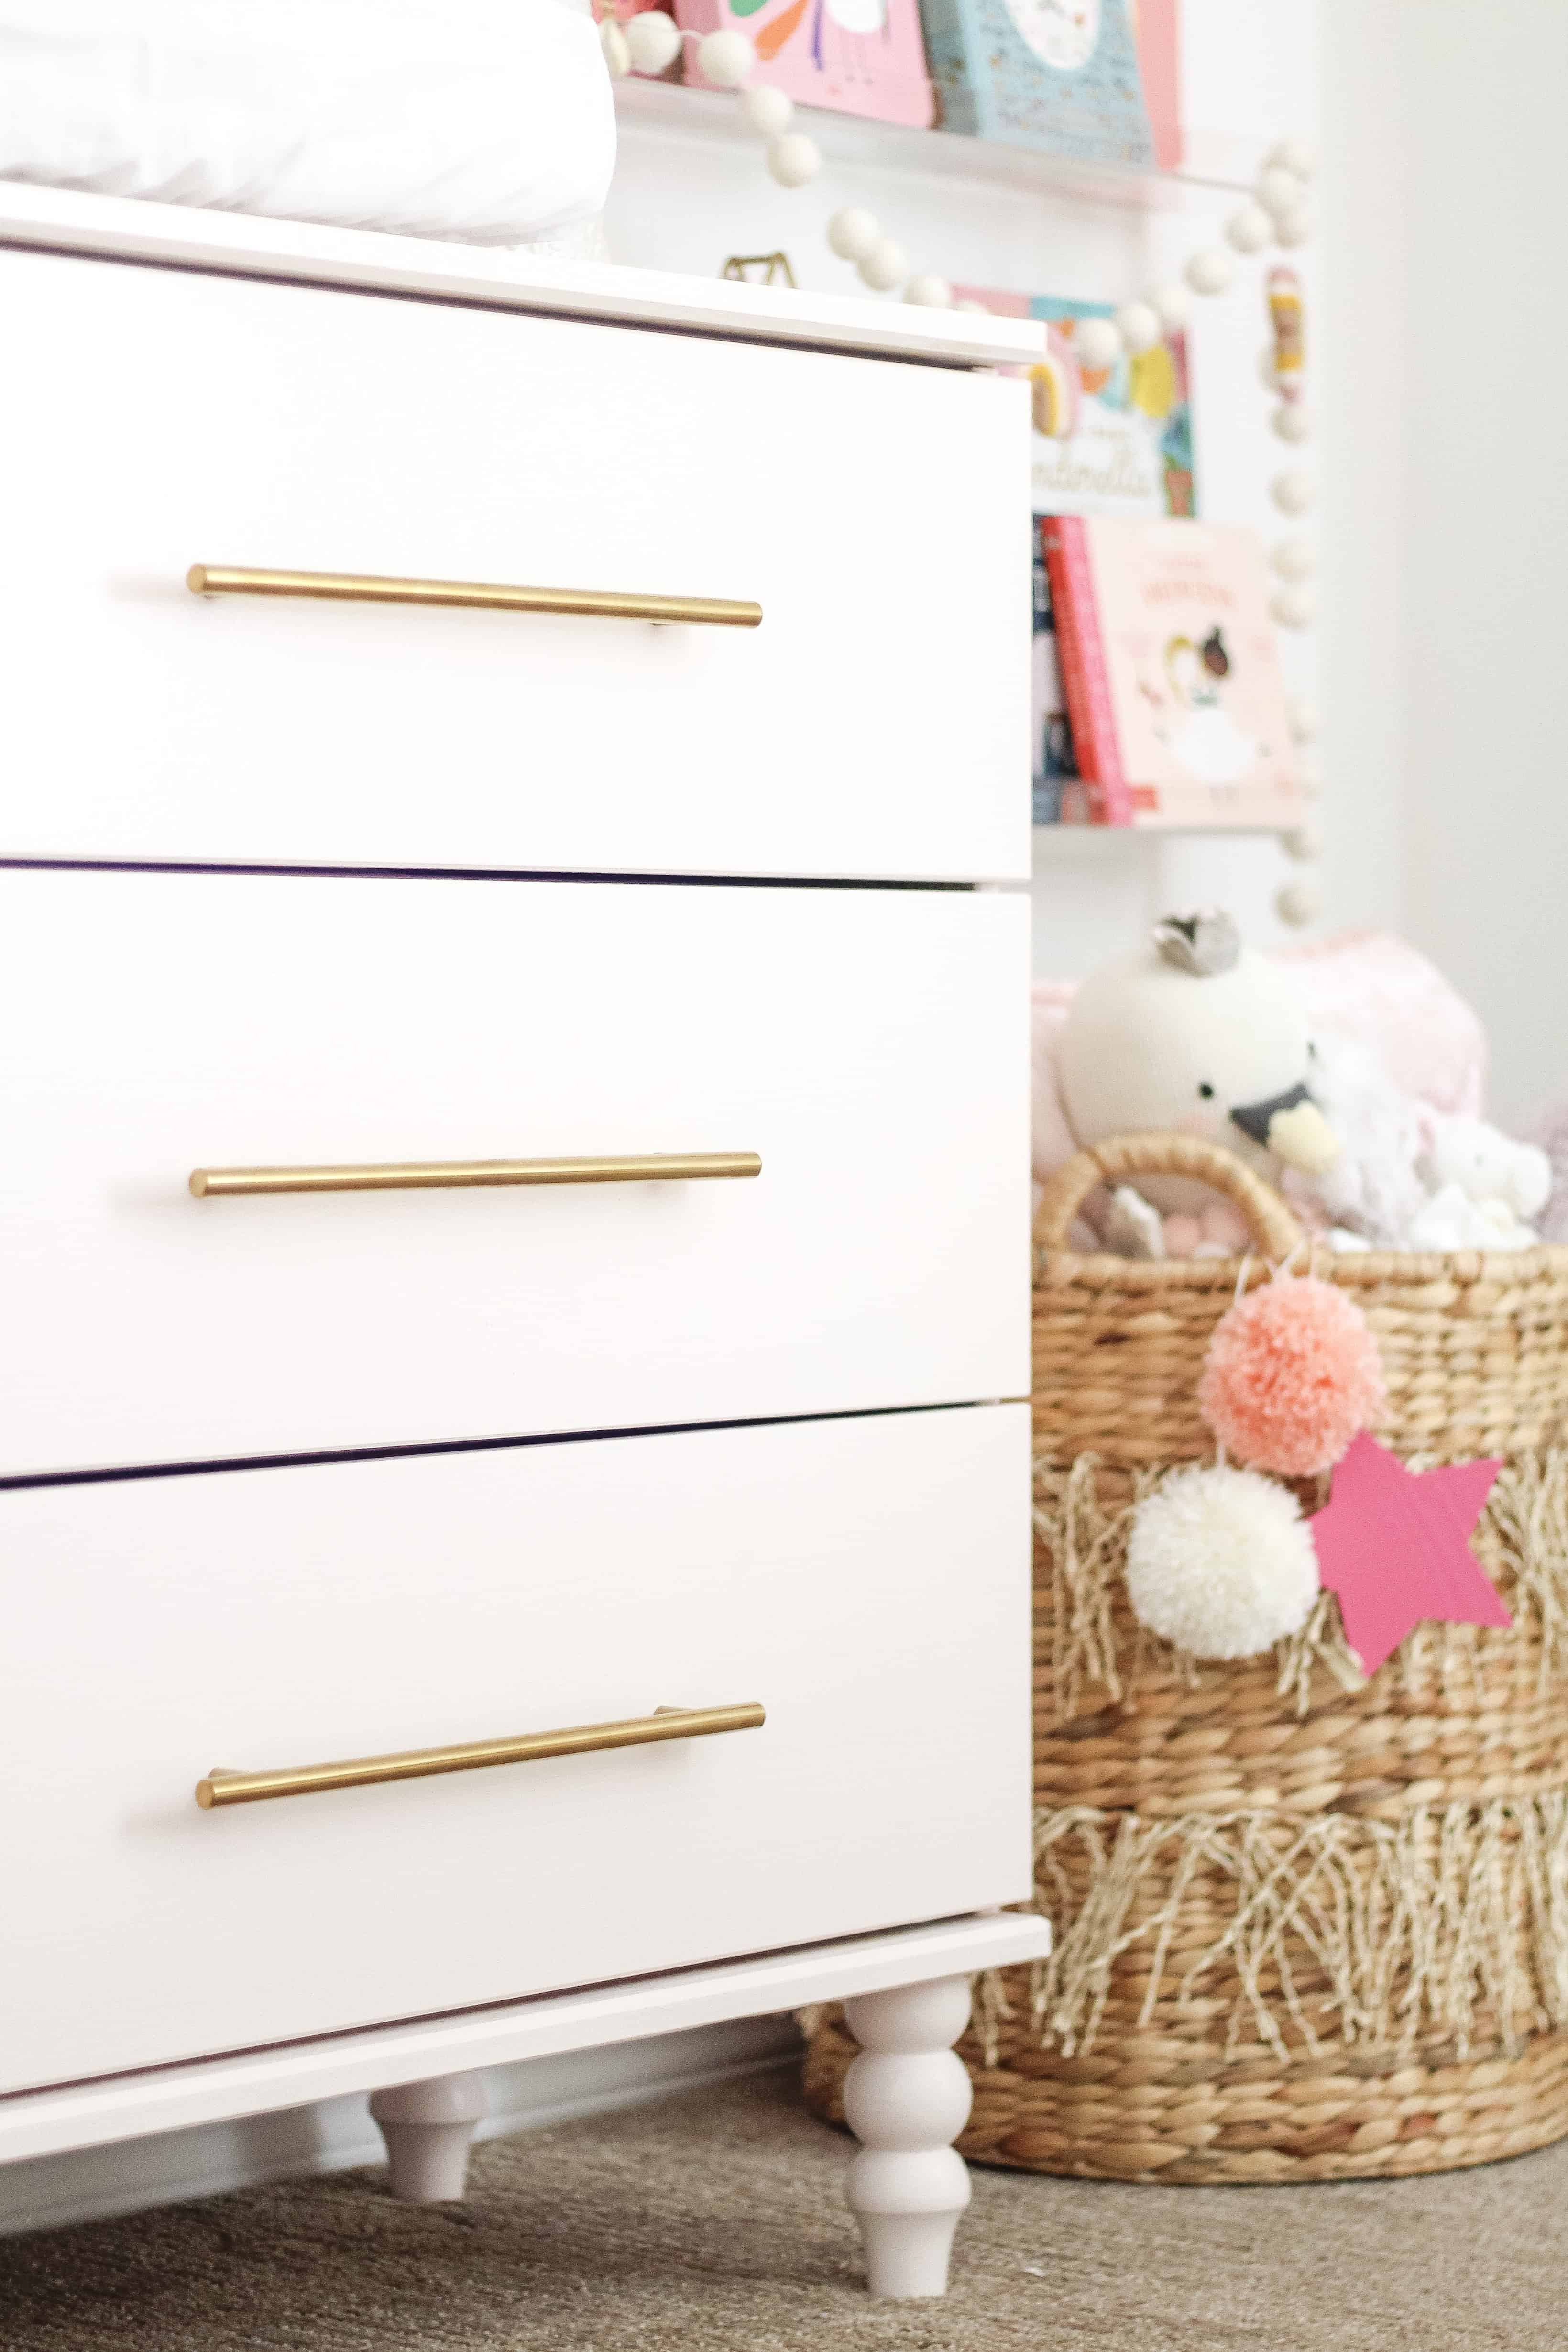 Ikea Tarva dresser in pink with gold drawer pulls